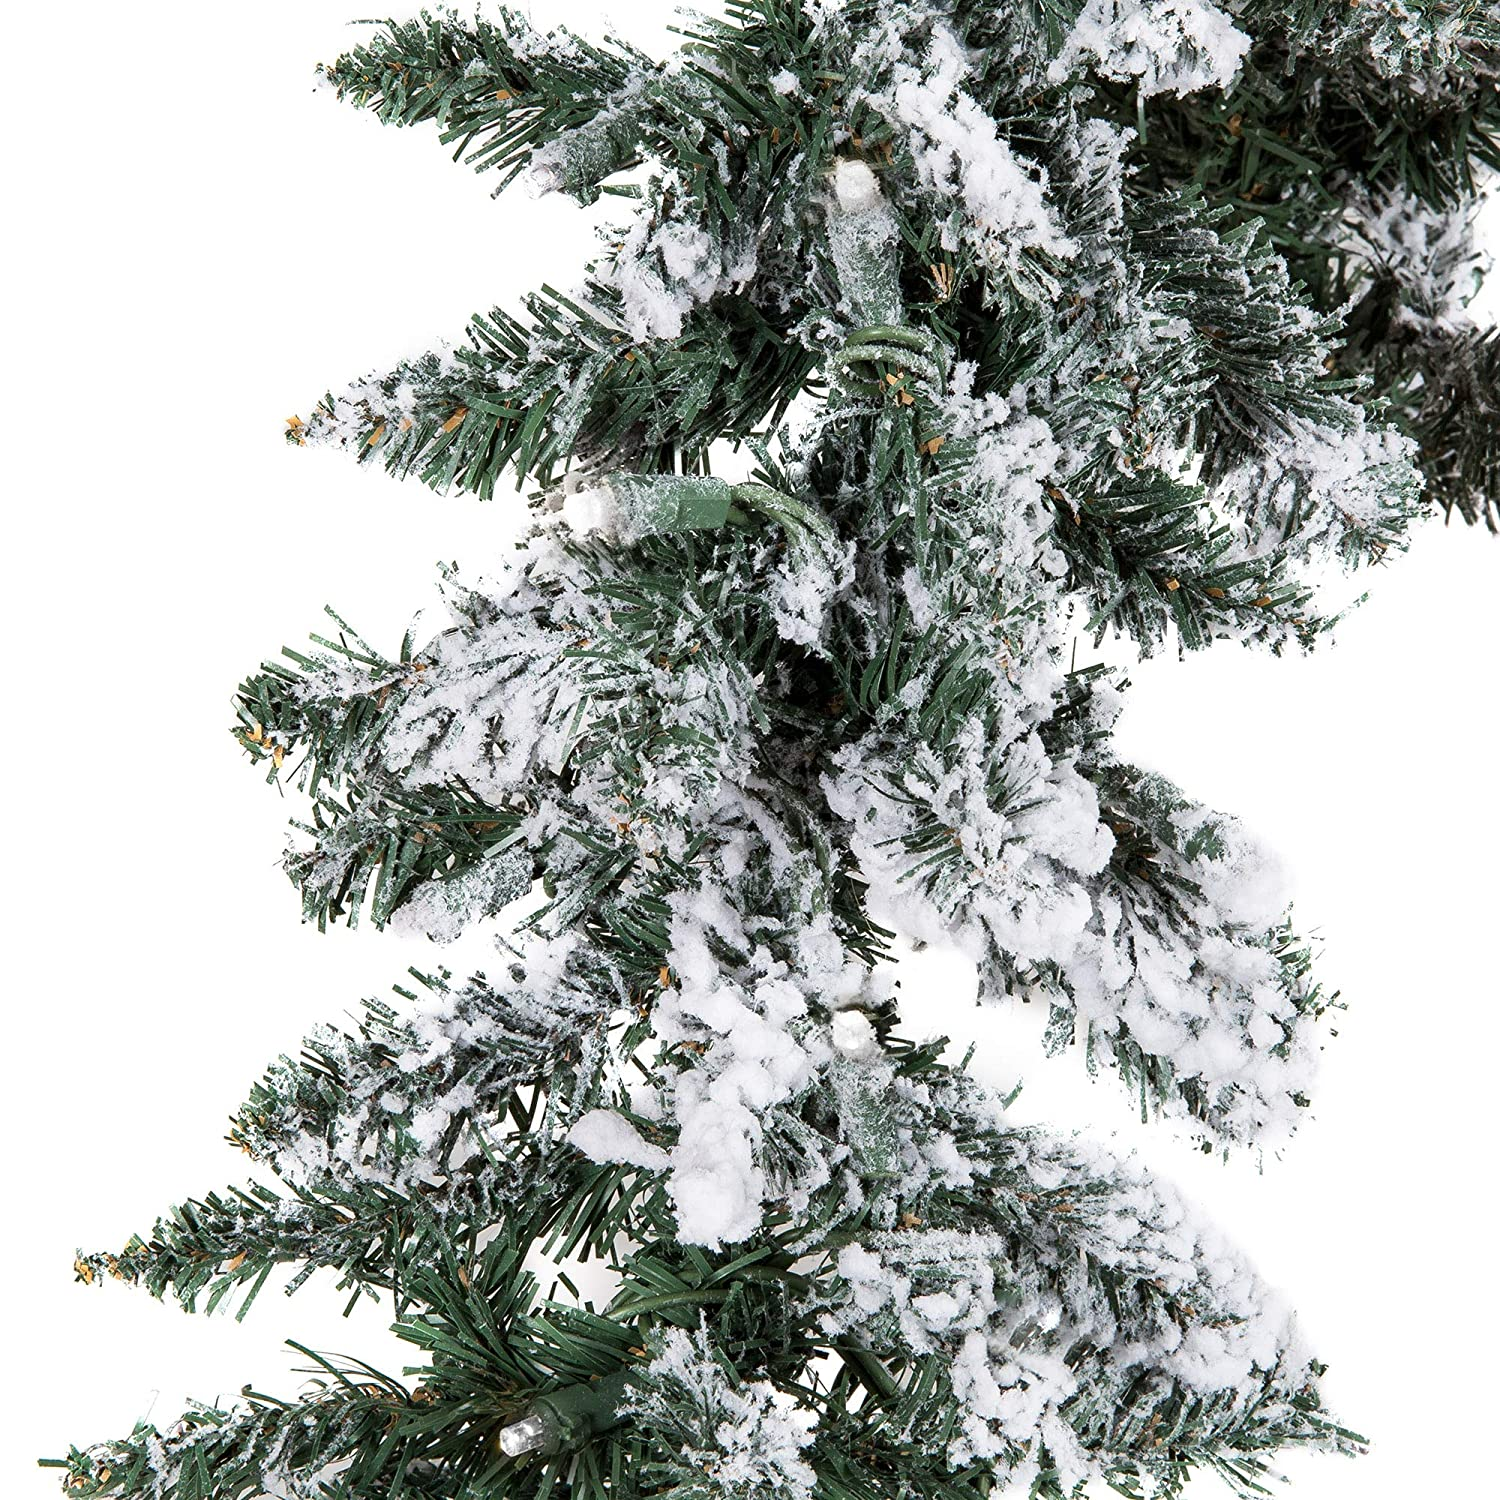 Green Best Choice Products 9ft Pre-Lit Snow Flocked Festive Artificial Christmas Garland Holiday Decoration with 100 Clear LED Lights